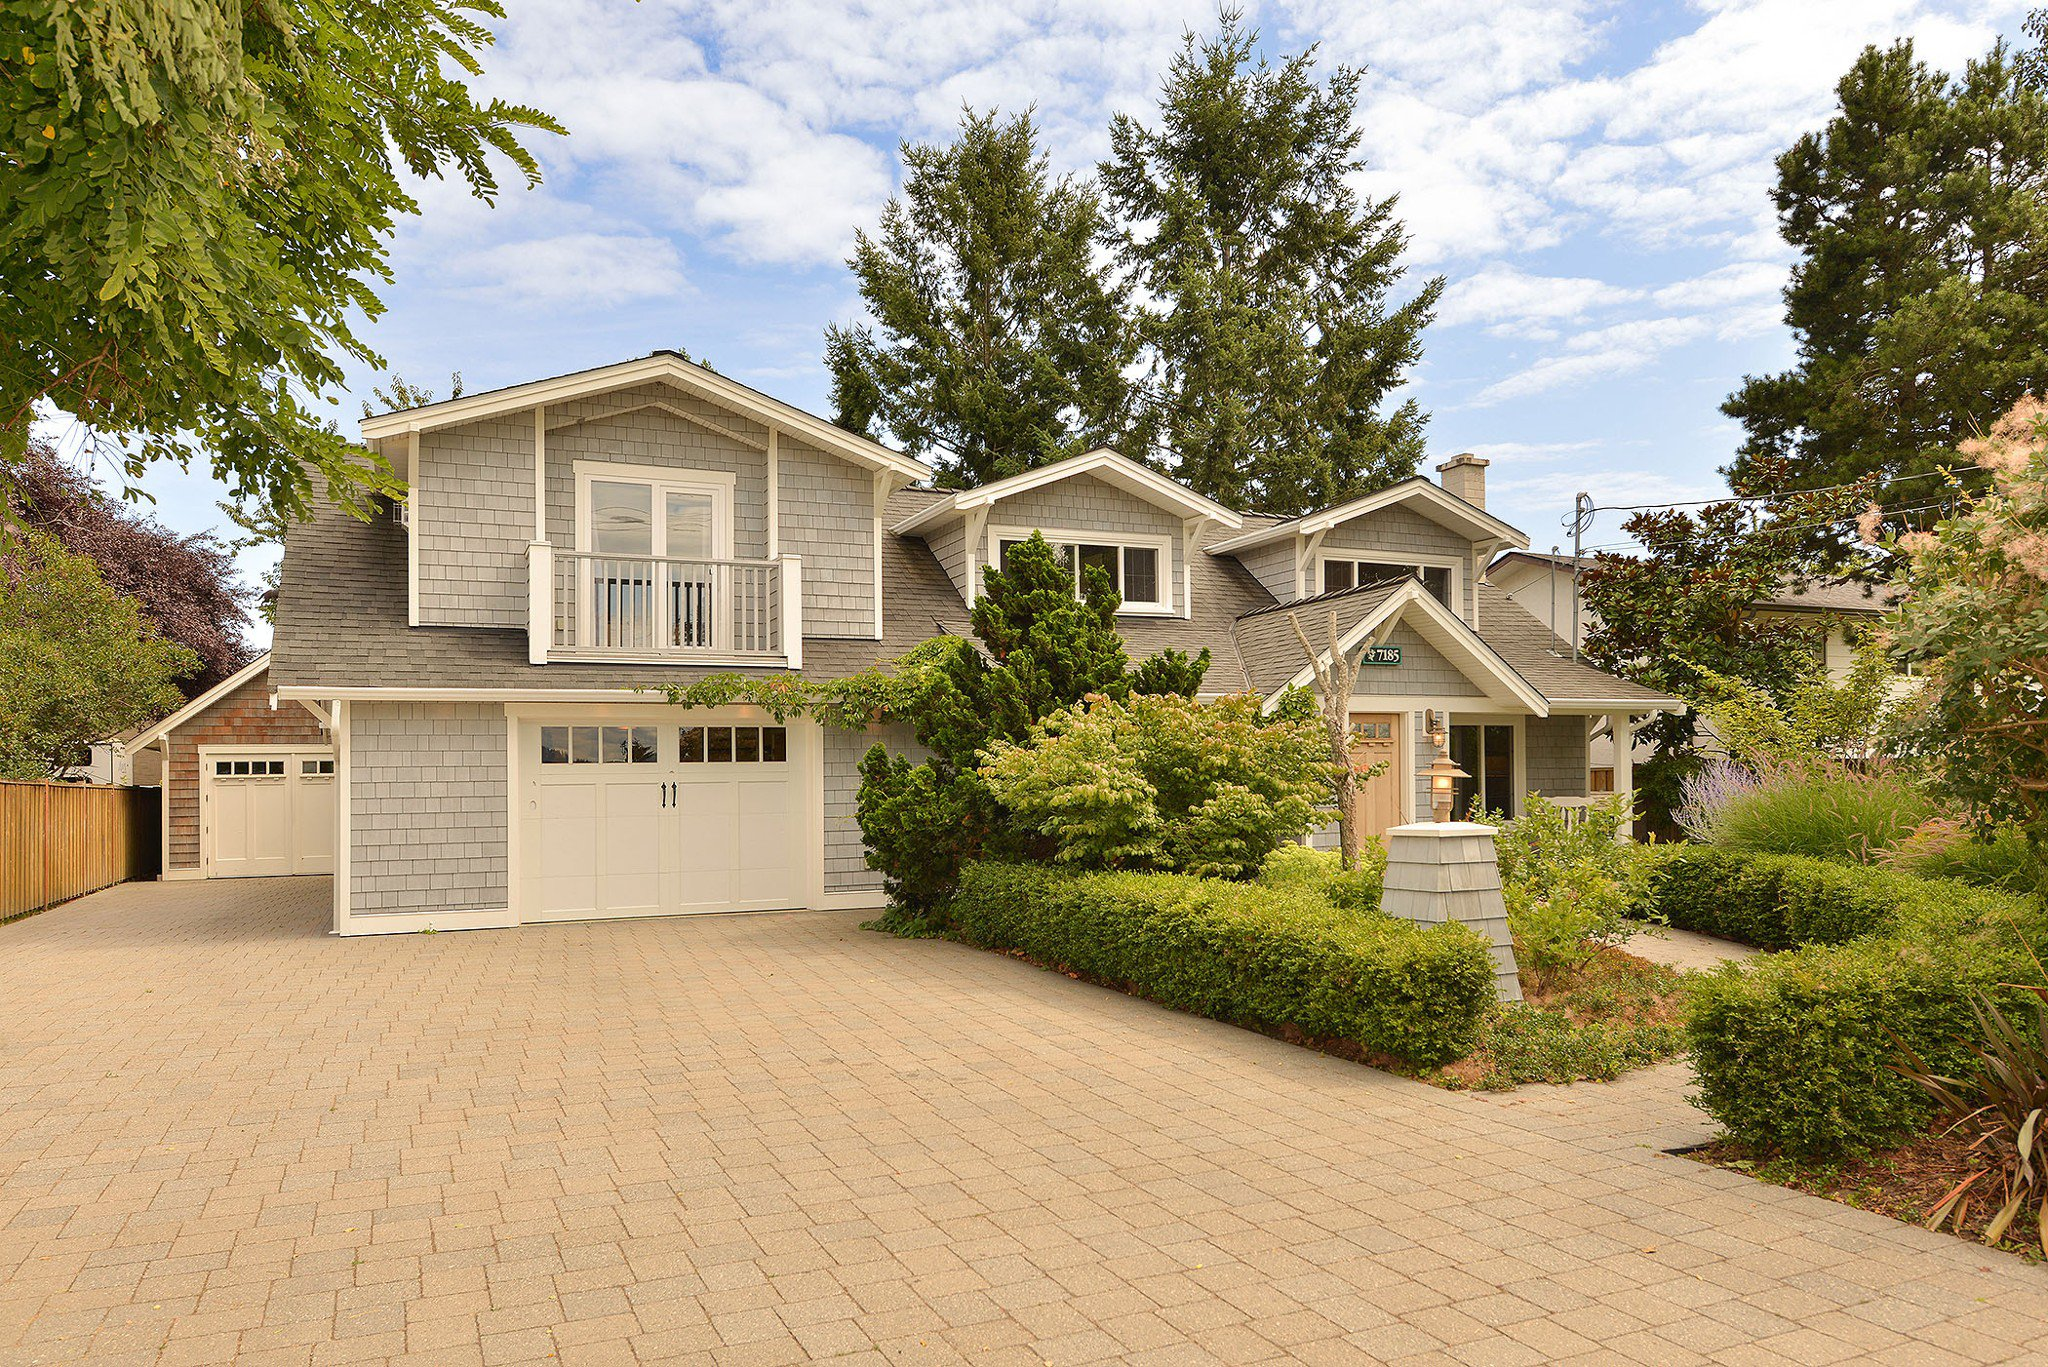 Main Photo: 7185 SEABROOK Road in VICTORIA: CS Saanichton Single Family Detached for sale (Central Saanich)